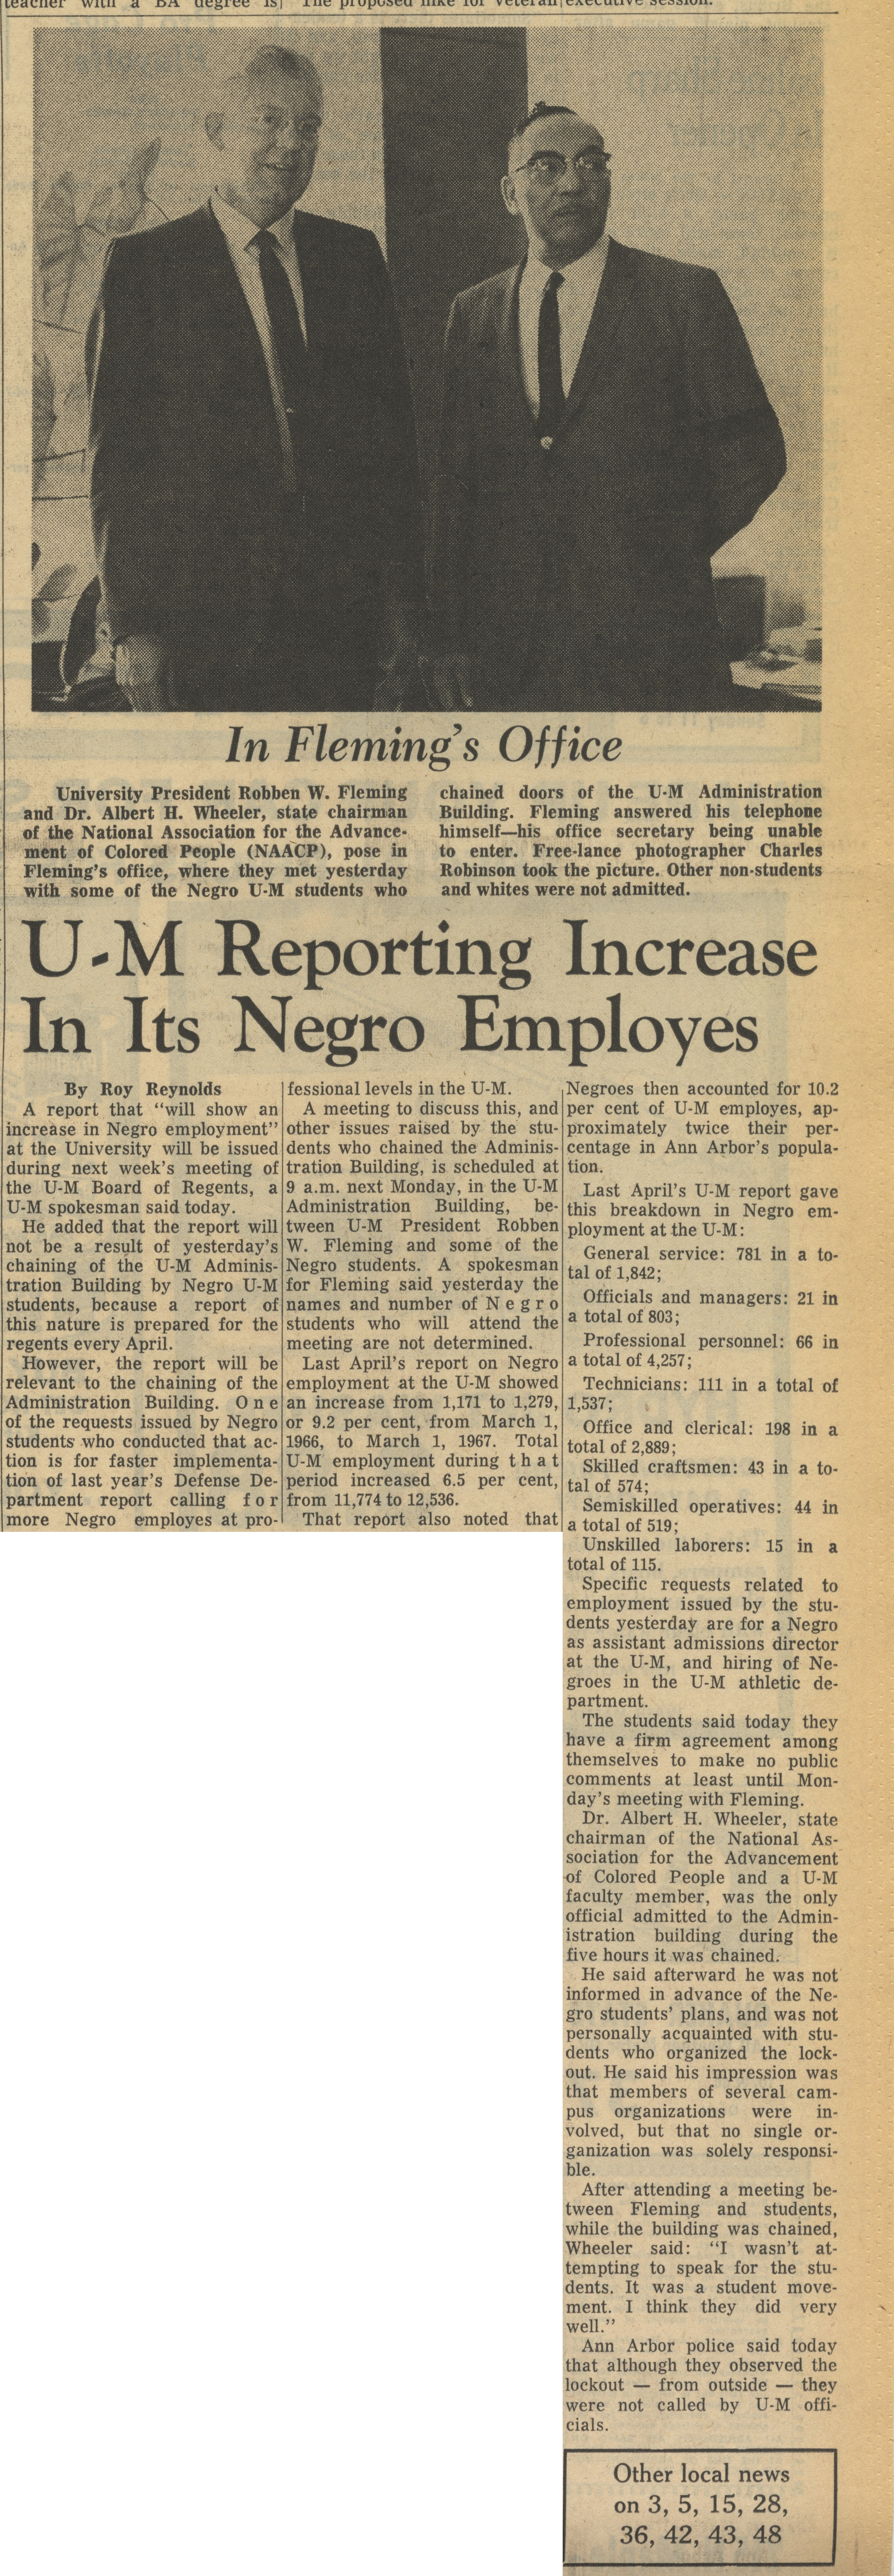 U-M Reporting Increases In Its Negro Employees image